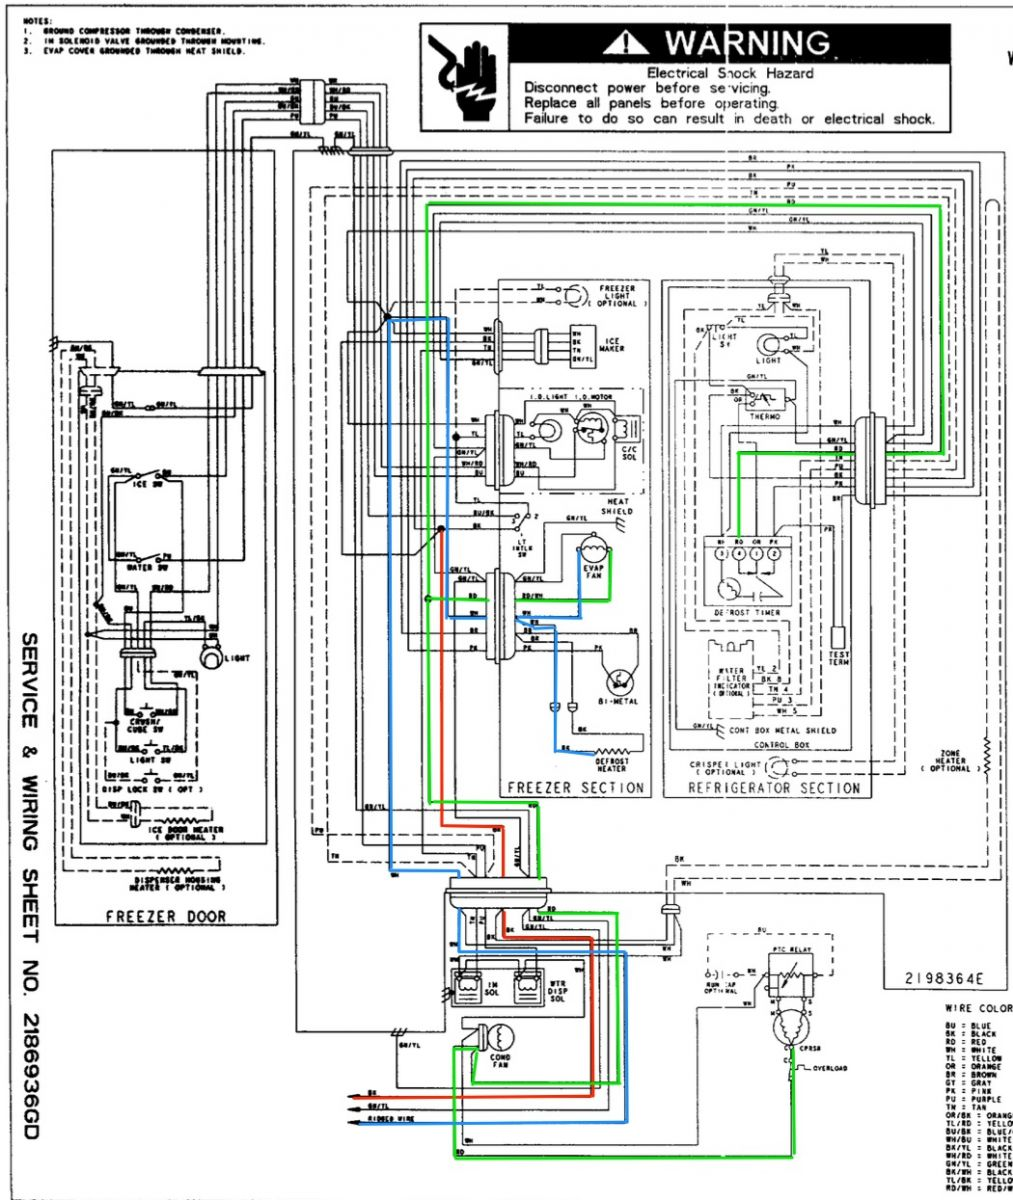 hight resolution of whirlpool wiring diagrams wiring diagram third levelwhirlpool ed25rfxfw01 refrigerator wiring diagram the wiring diagram whirlpool acq128xpo